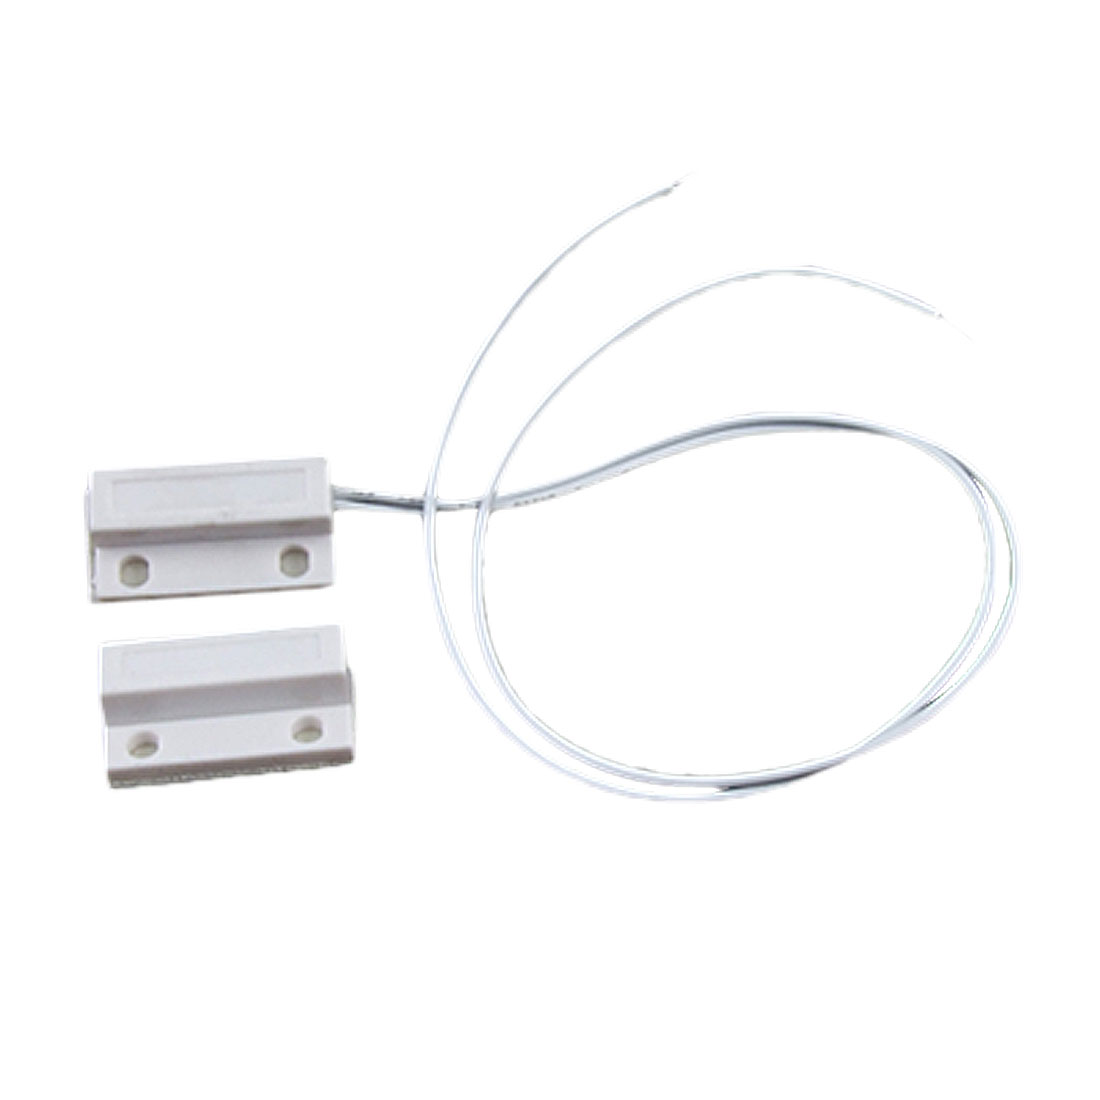 White Door Window Contacts Magnetic Reed Switch Sensor